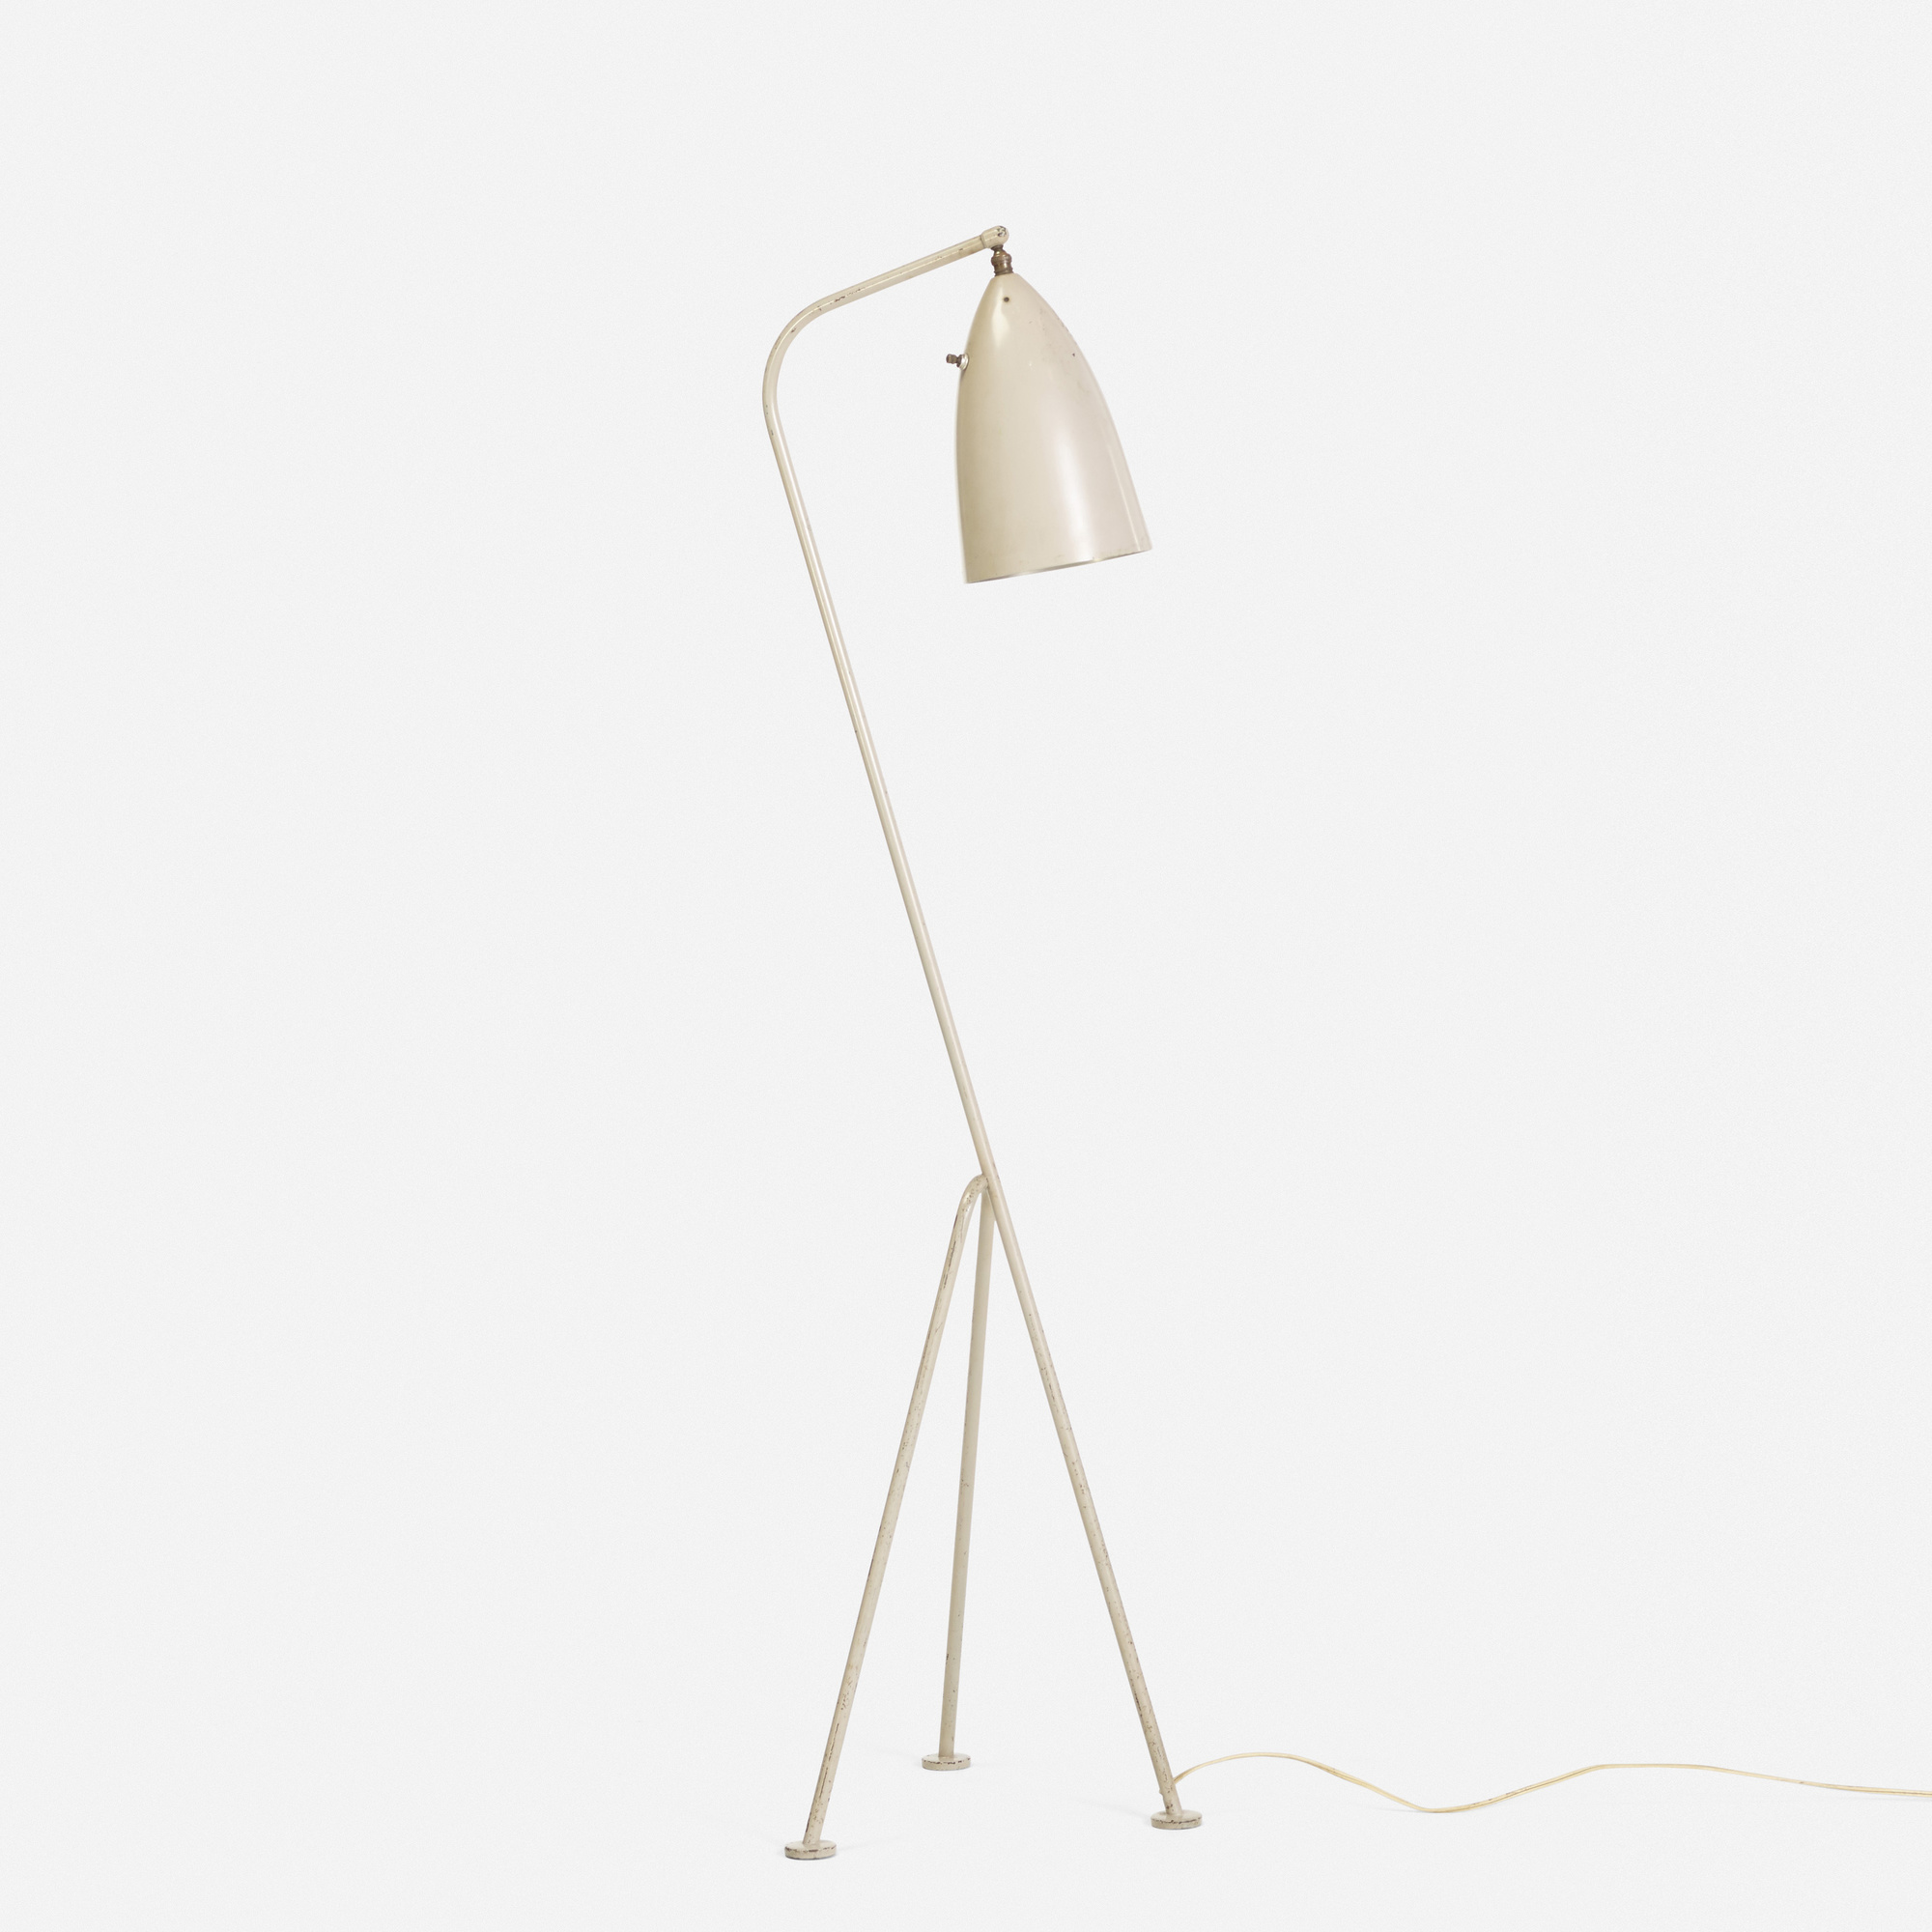 199: Greta Magnusson Grossman / Grasshopper floor lamp (1 of 1)